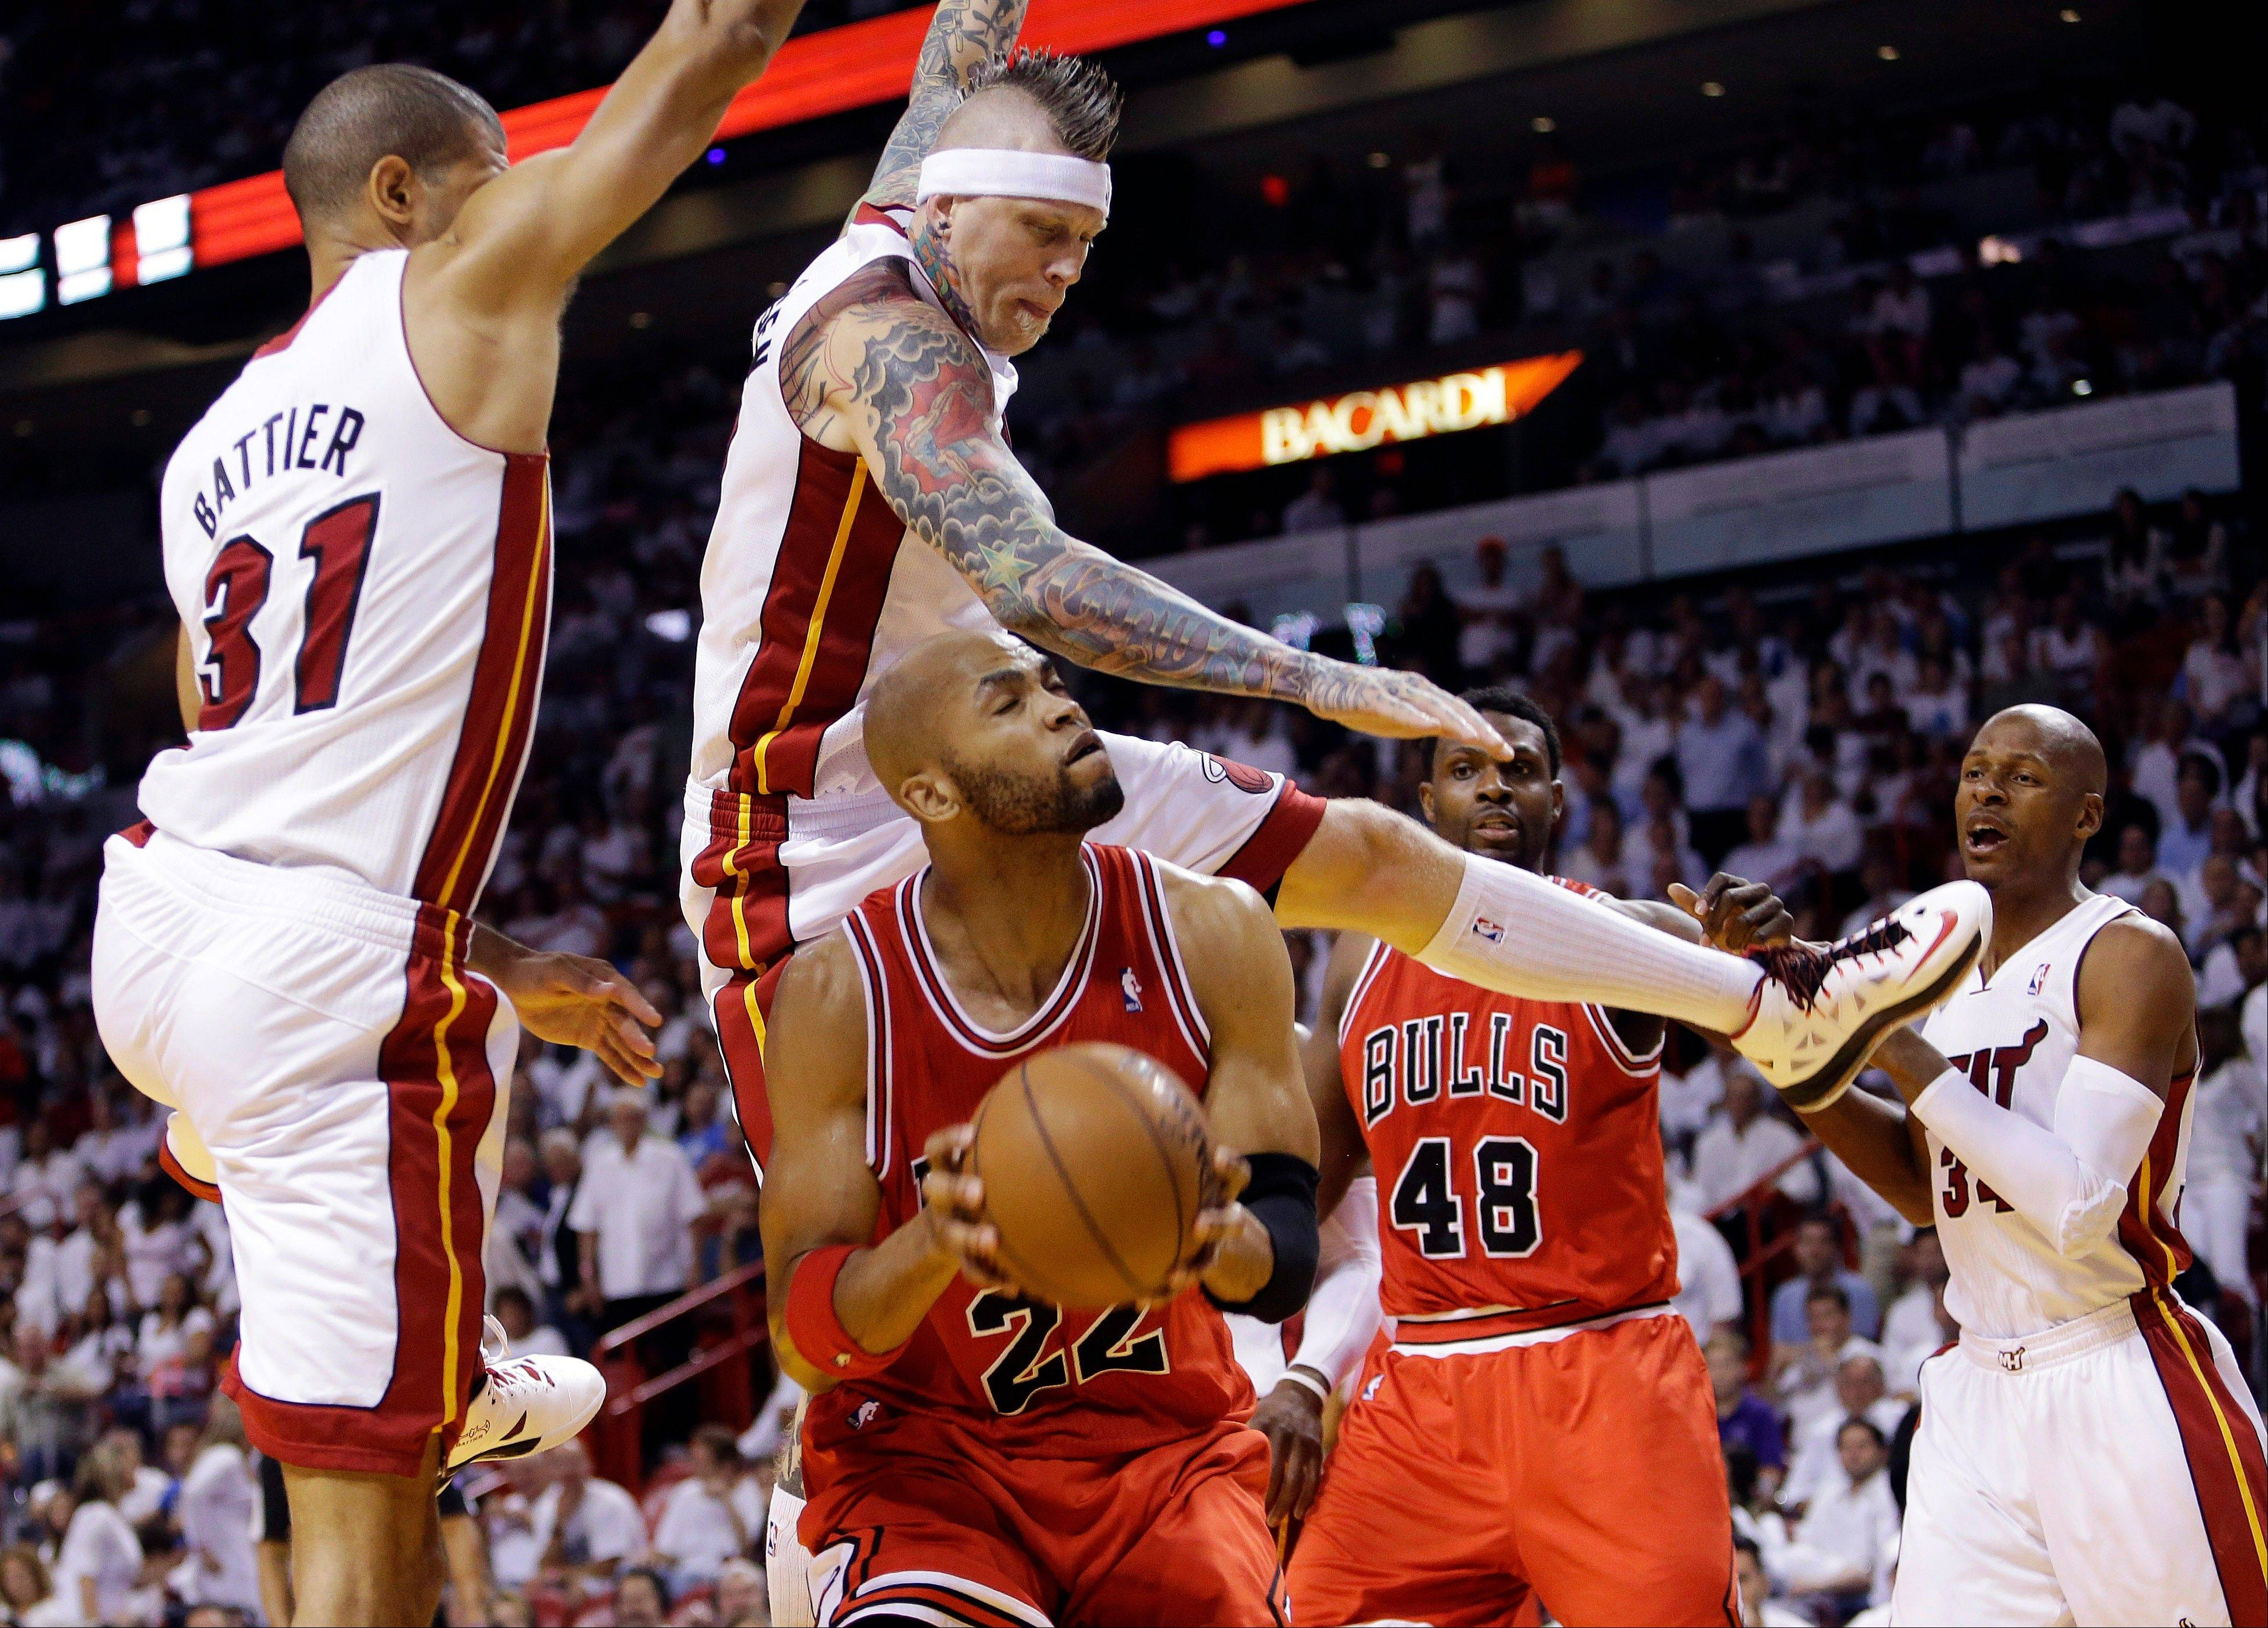 Taj Gibson (22) attempts to shoot as Miami Heat's Shane Battier (31) and Chris Andersen, center, defend in the second half of Game 2 of their NBA basketball playoff series in the Eastern Conference semifinals, Wednesday, May 8, 2013, in Miami. The Heat won 115-78.